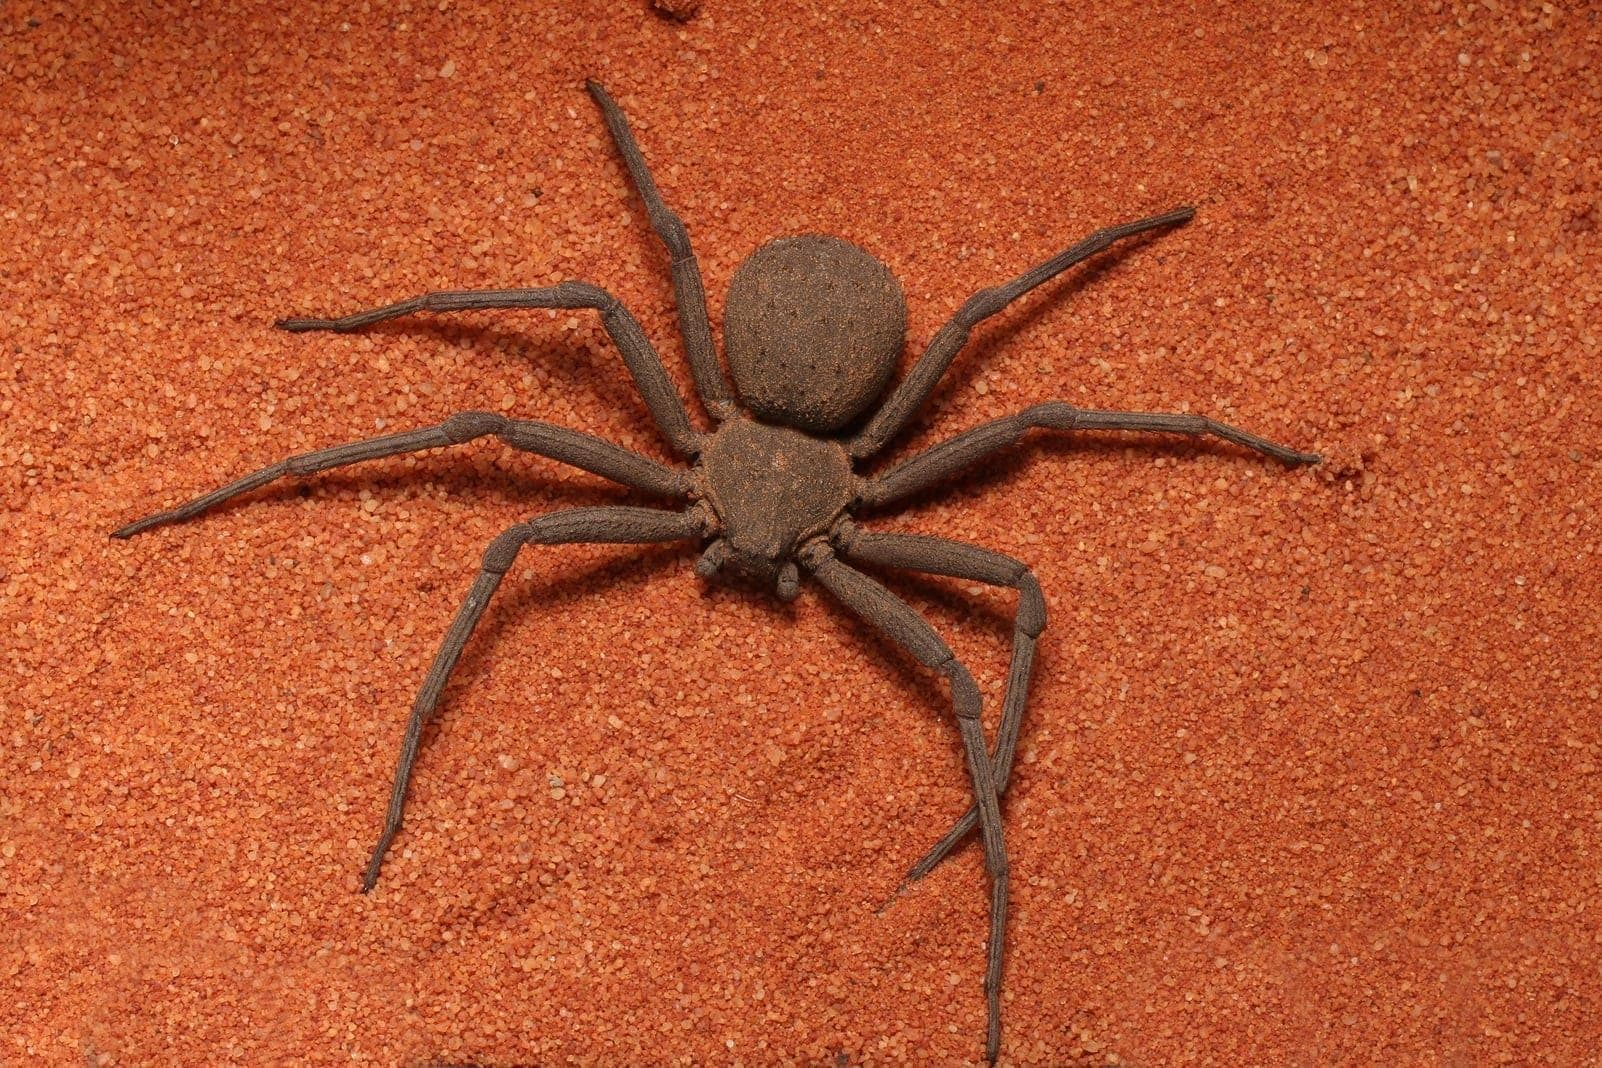 six-eyed Sand Spider